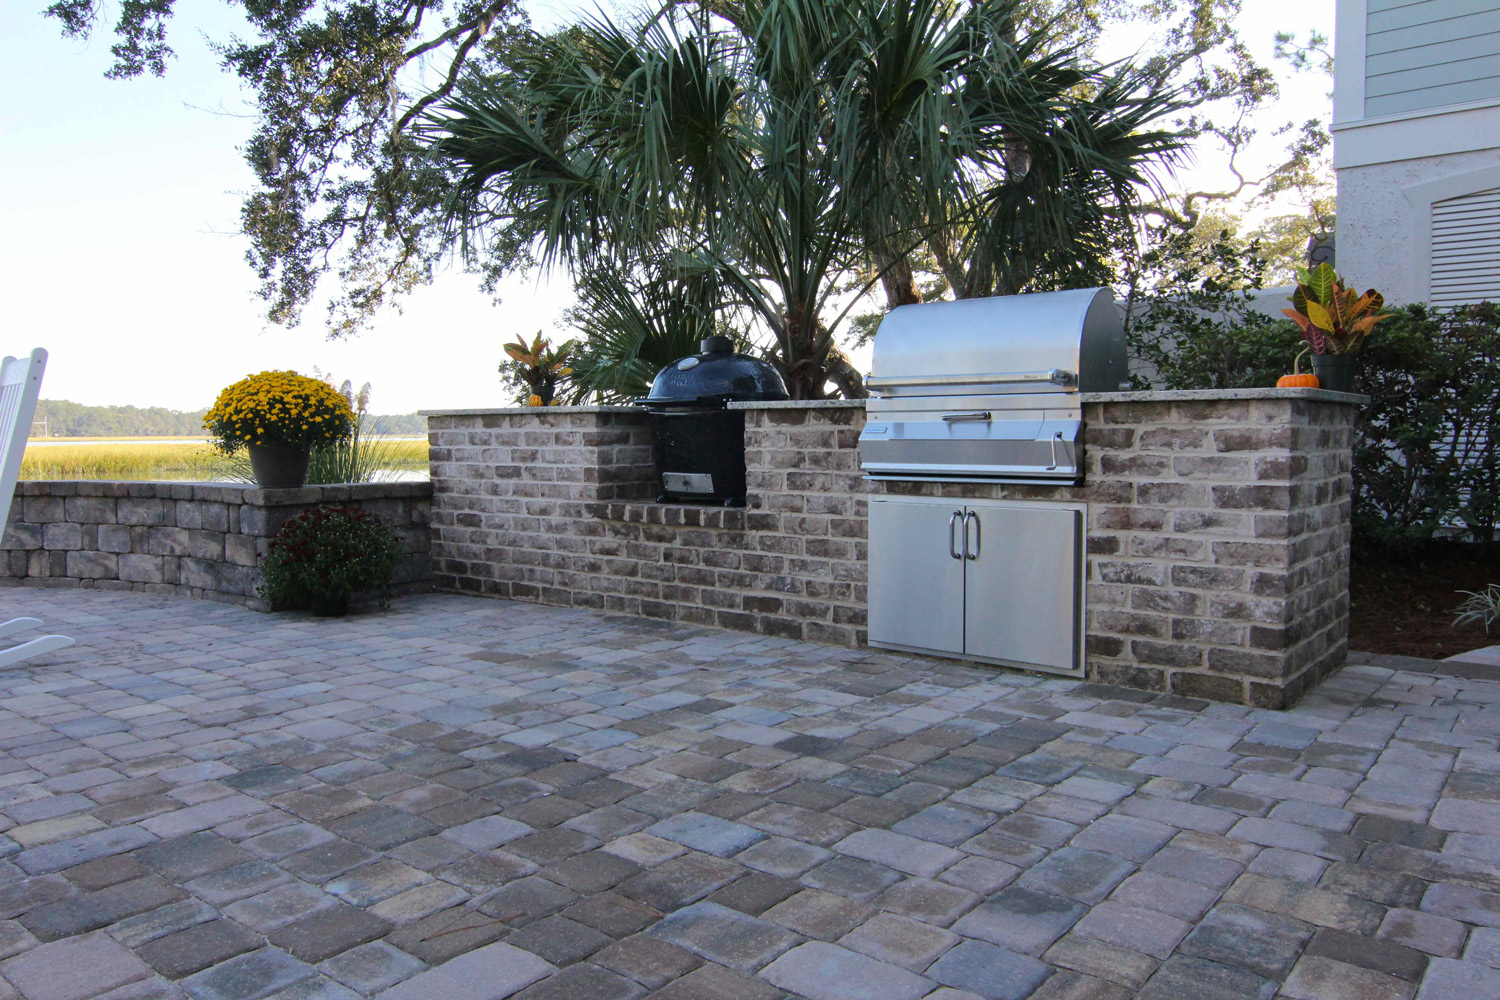 Old Savannah Grey, stone built outdoor kitchen design on Hilton Head Island, SC.